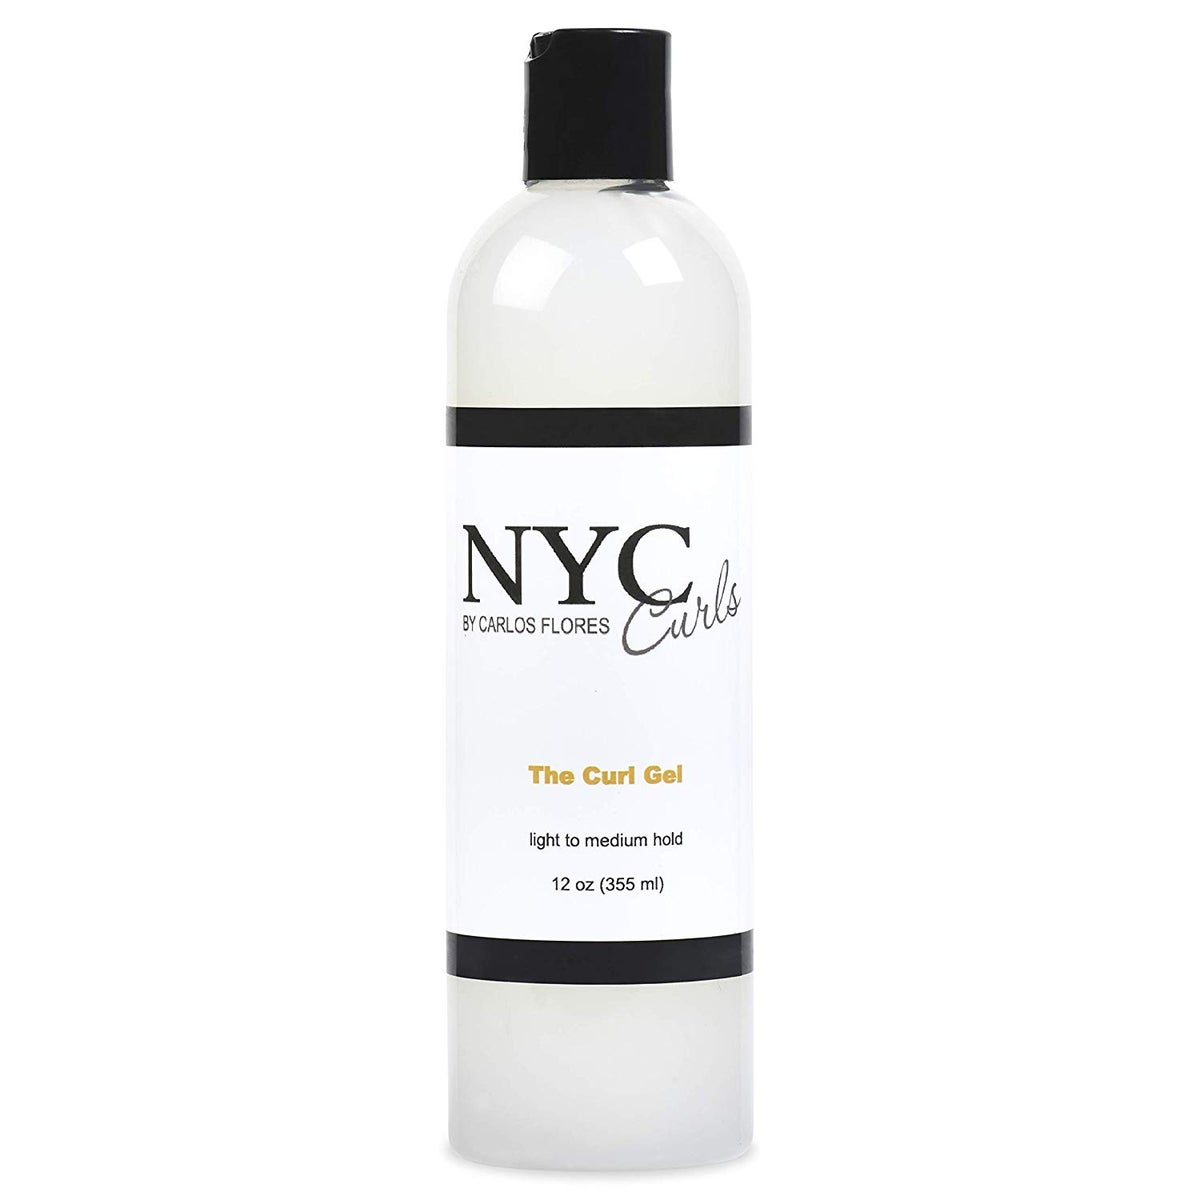 Image of NYC Curls The Curl Gel | 355ml